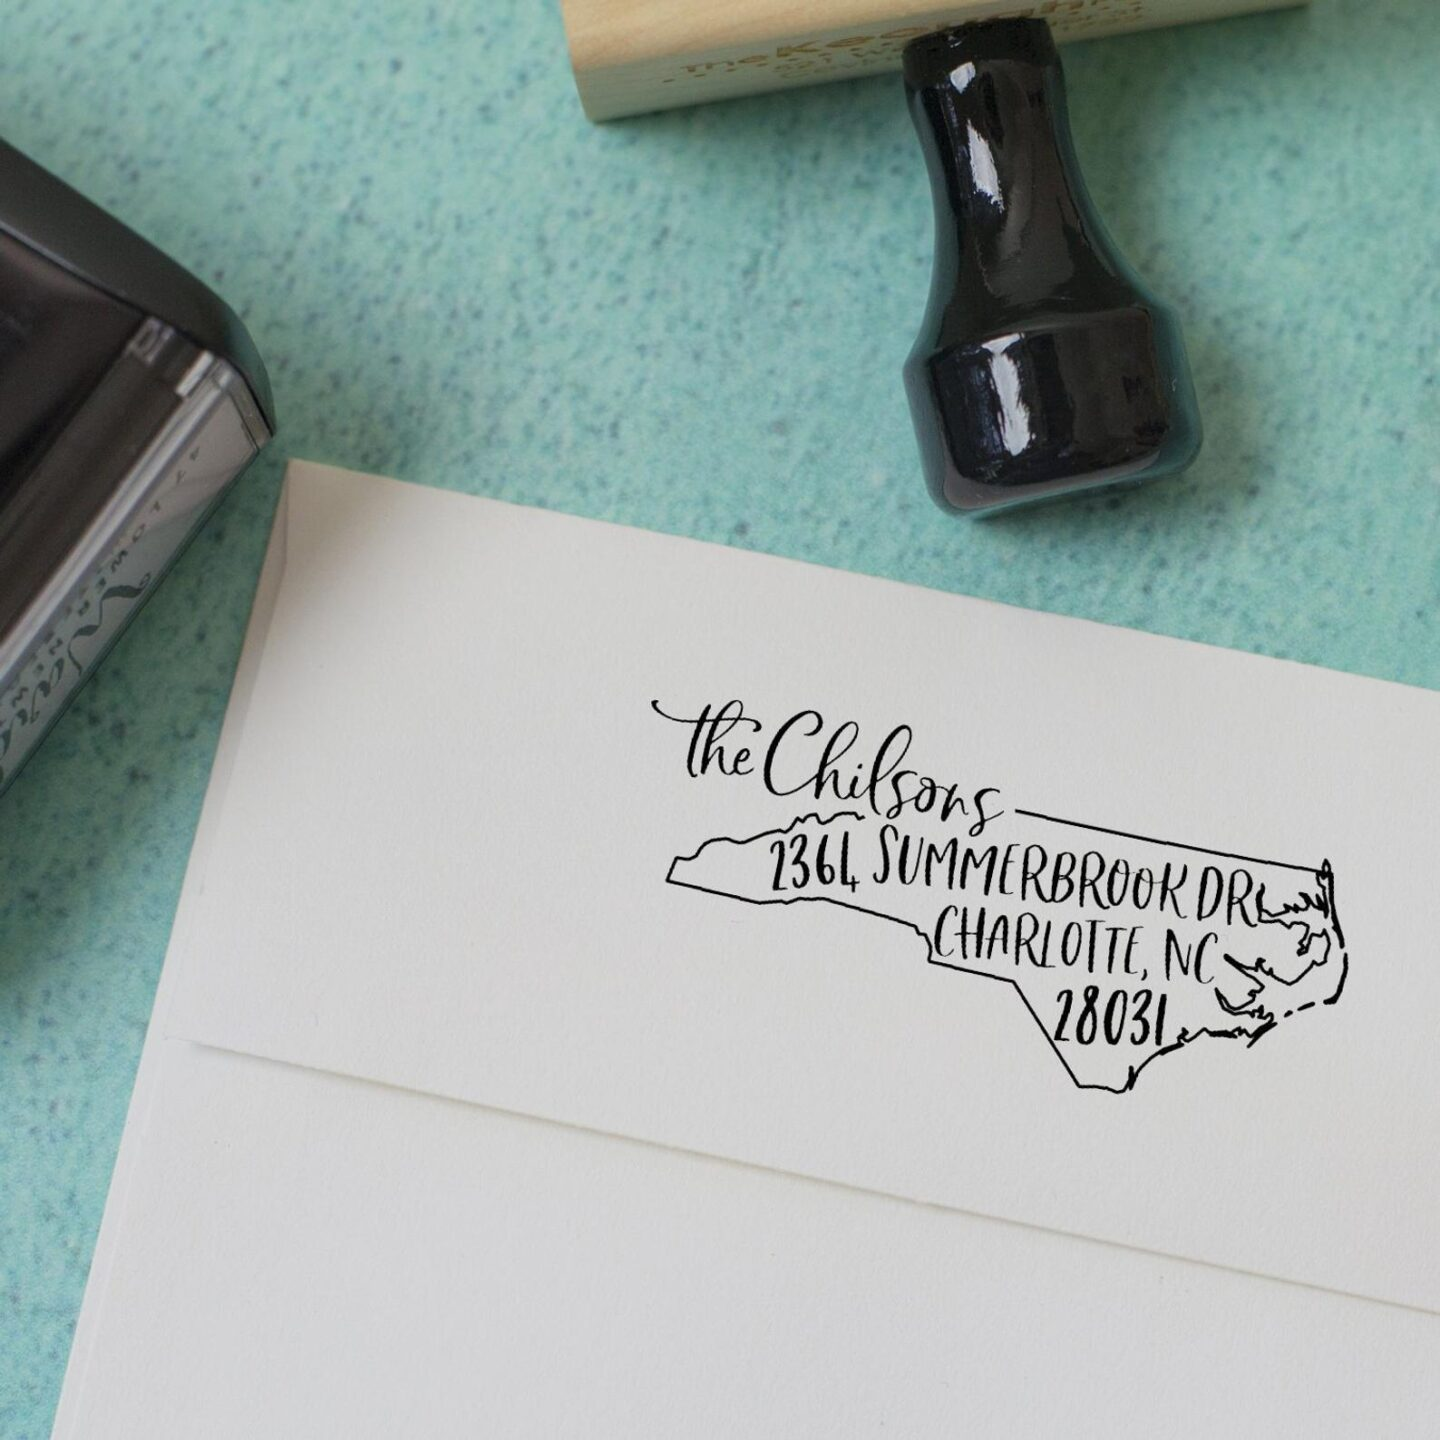 Custom return address stamp in the shape of the state of North Carolina, stamped on the back flap of an envelope.